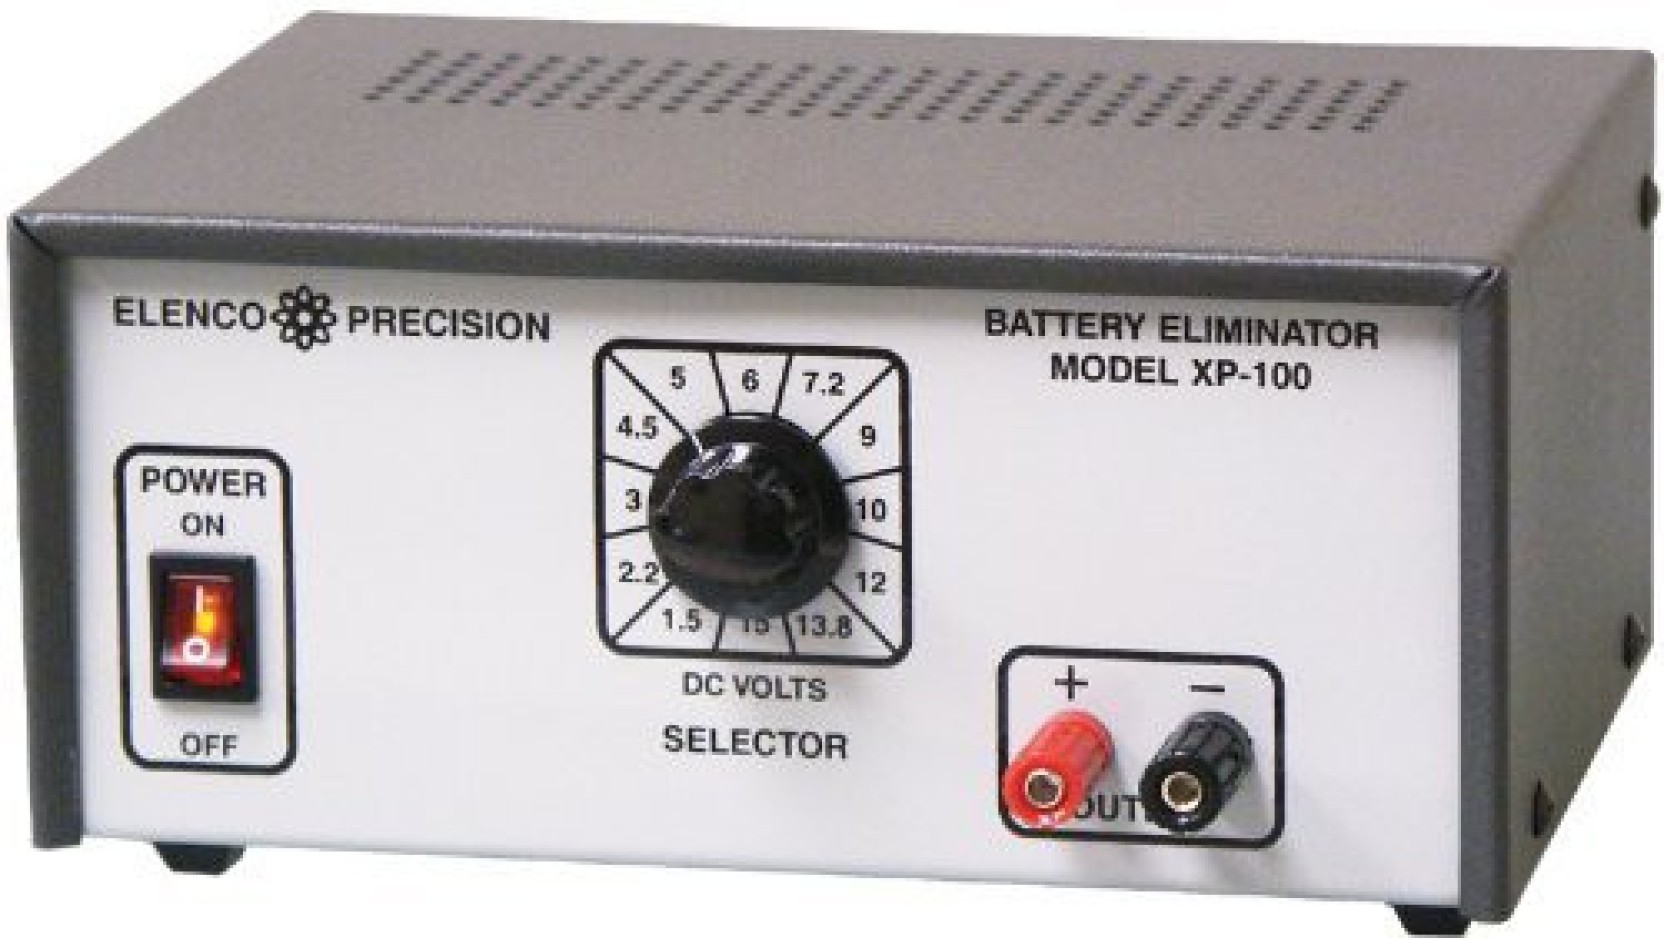 Generic Elenco Deluxe Battery Eliminator Model Xp 100 Solid Circuit Pictures On Offer